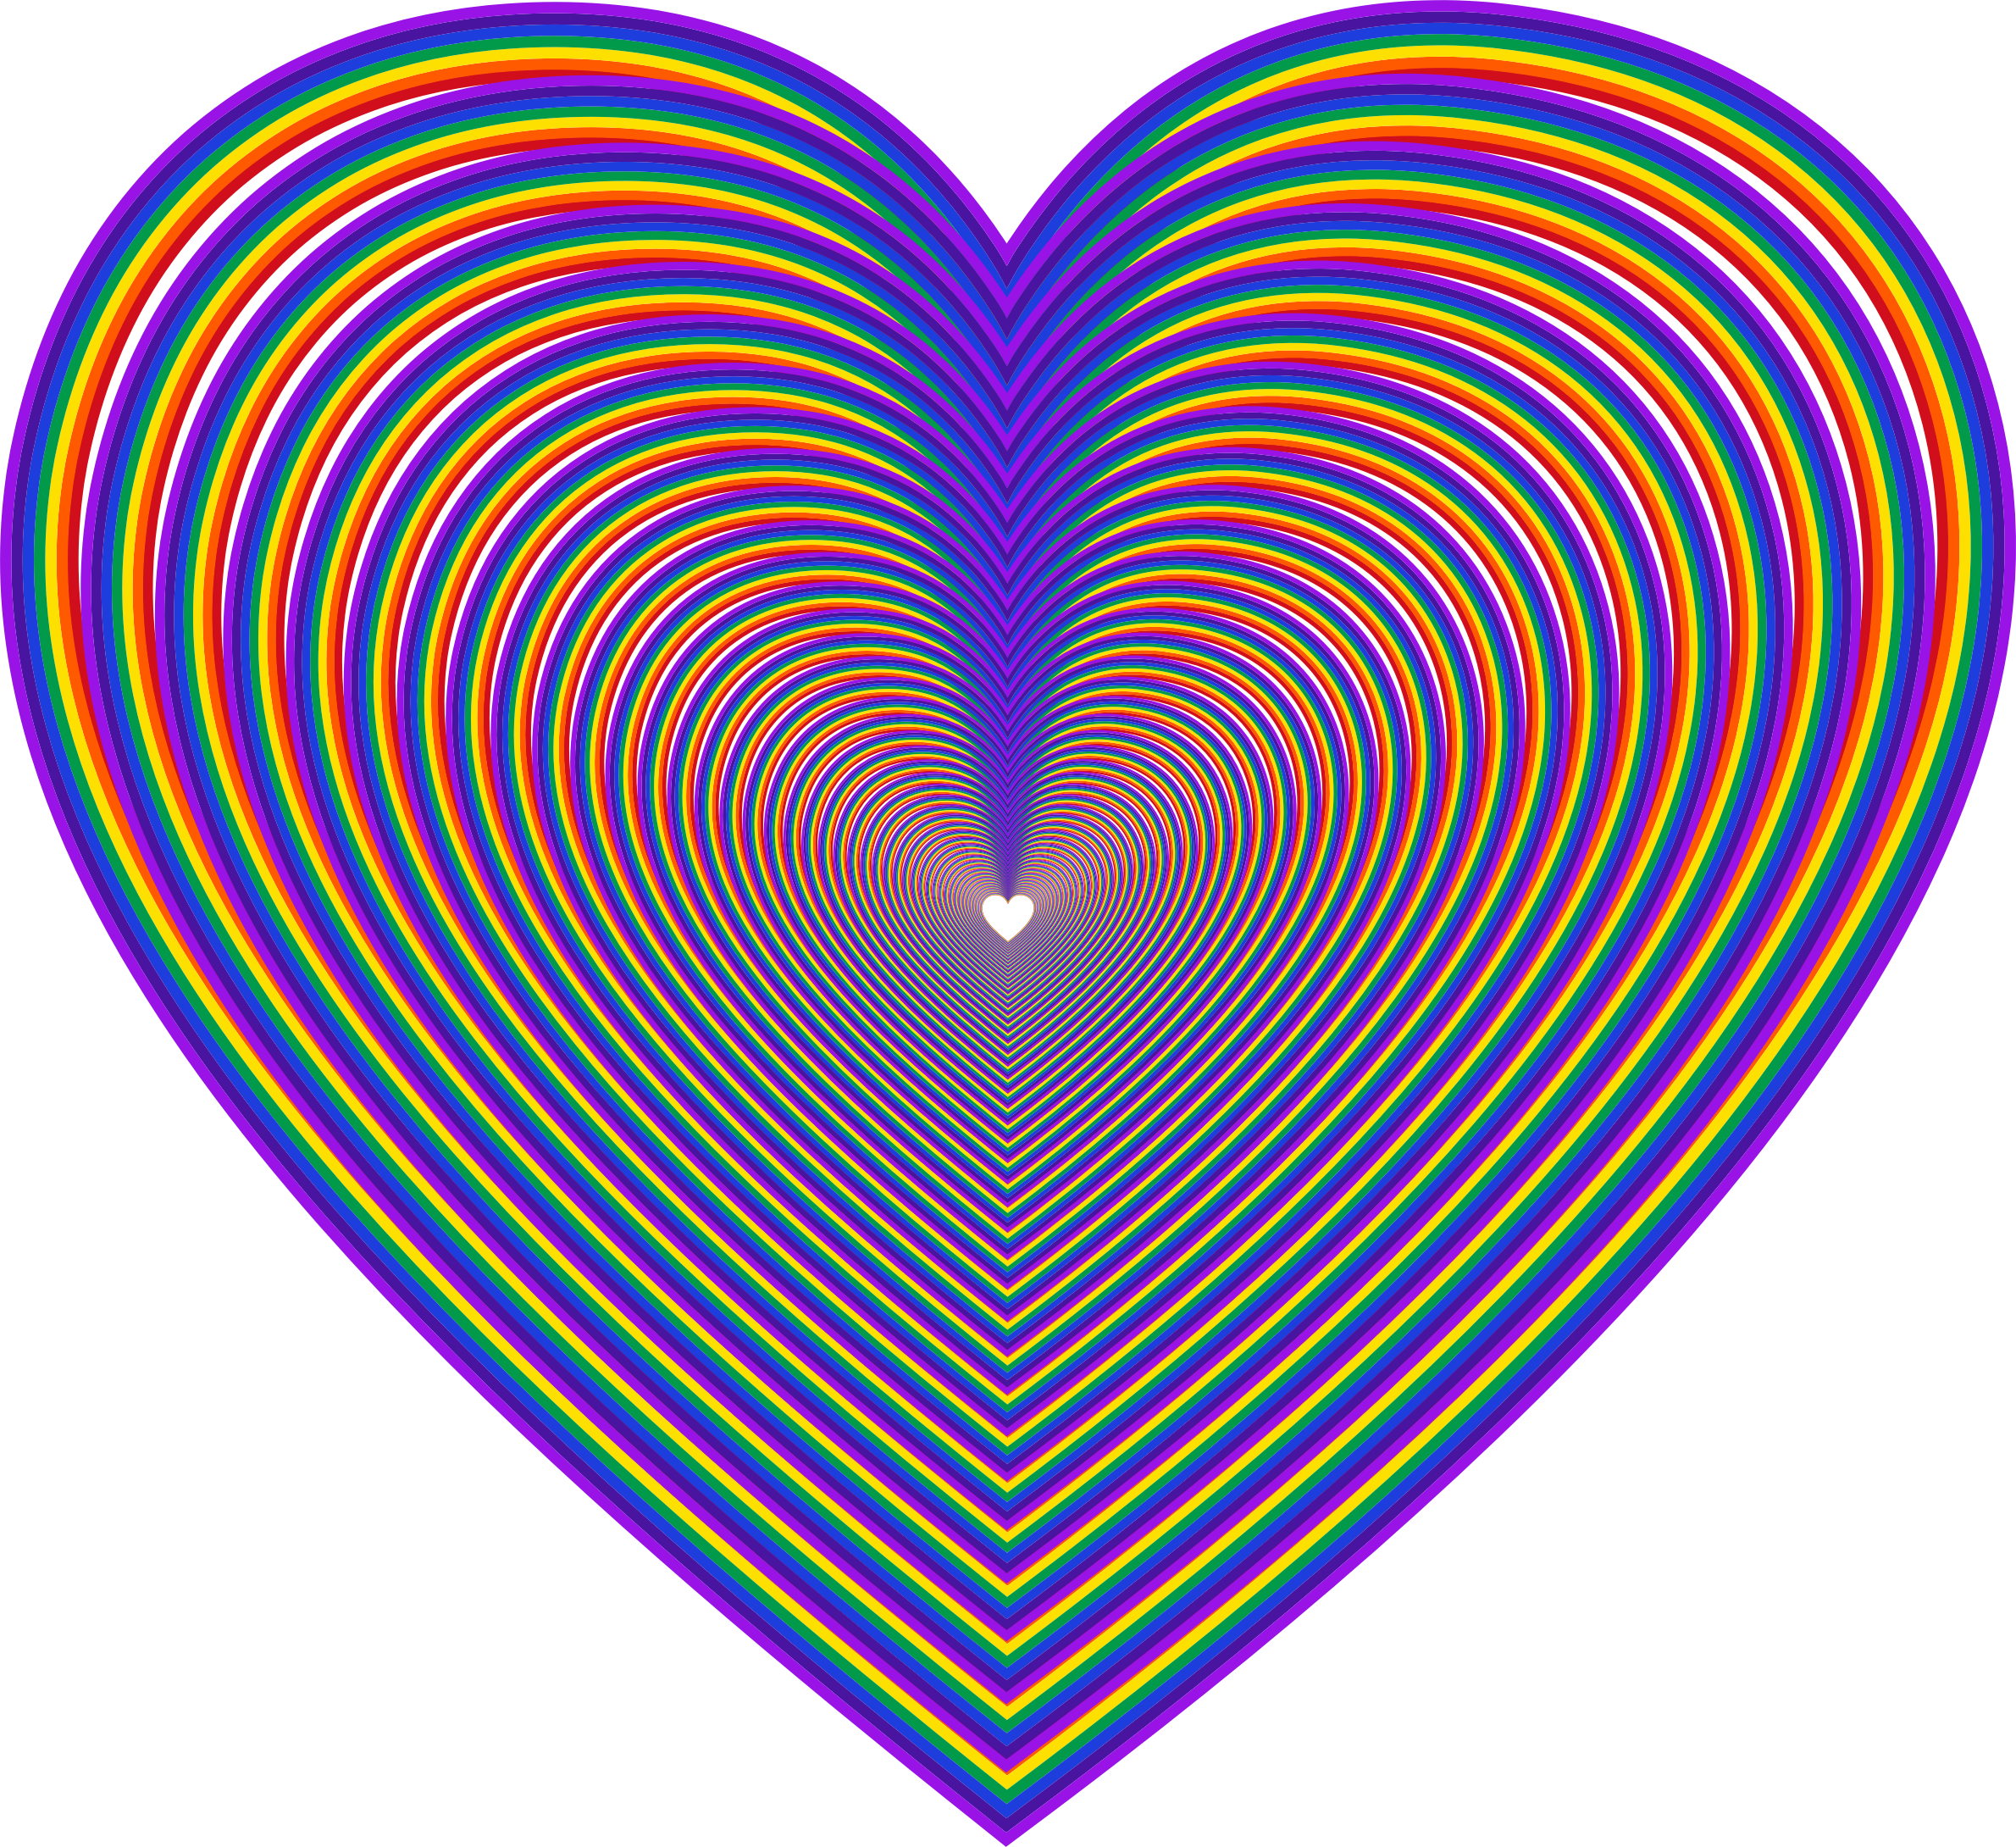 Rainbow Heart 3 by GDJ